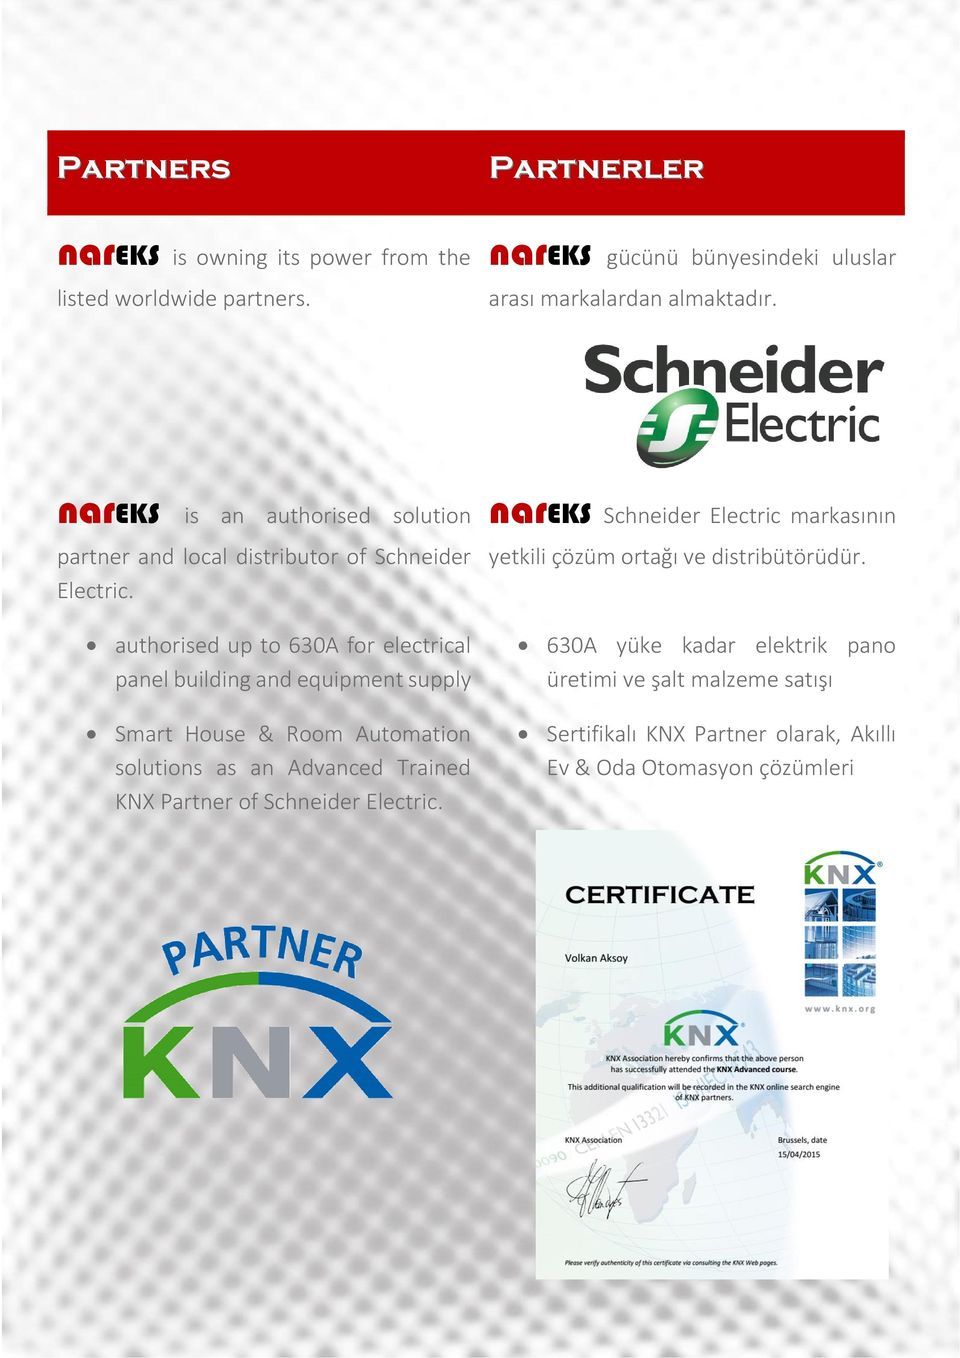 authorised up to 630A for electrical panel building and equipment supply Smart House & Room Automation solutions as an Advanced Trained KNX Partner of